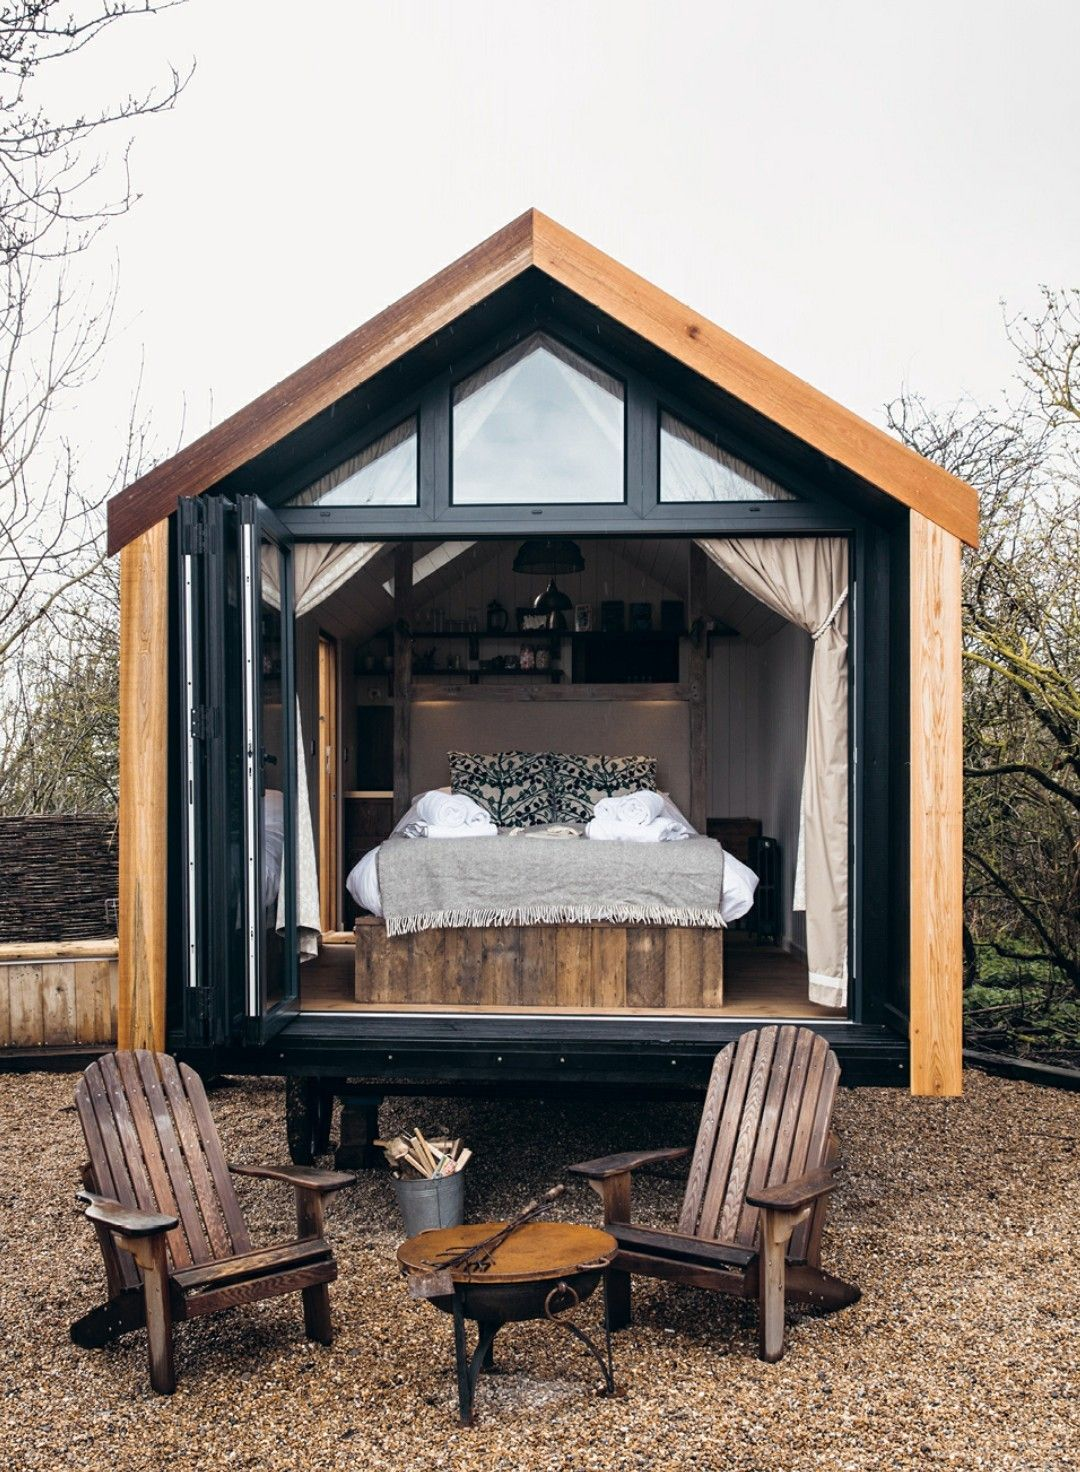 Pin by Xin Xin on Tiny House in 2020 Backyard